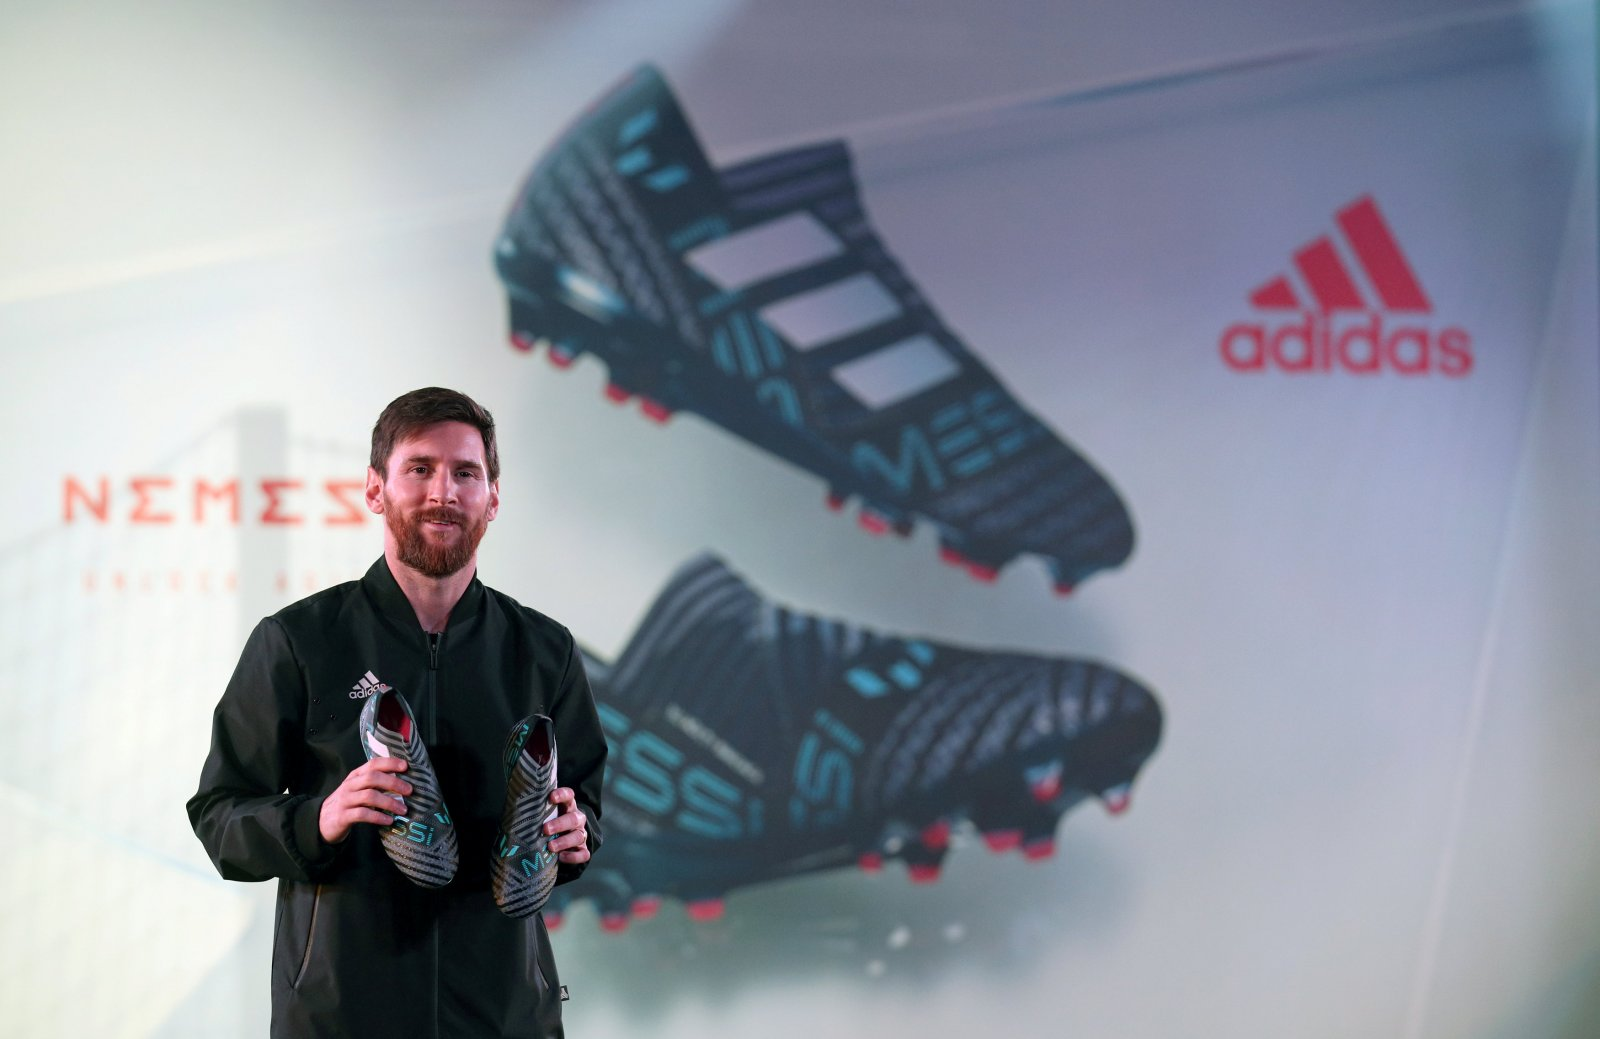 Lionel Messi S Adidas Ad Has A Familiar Link To Last Summer S Football Madness Digital Sport